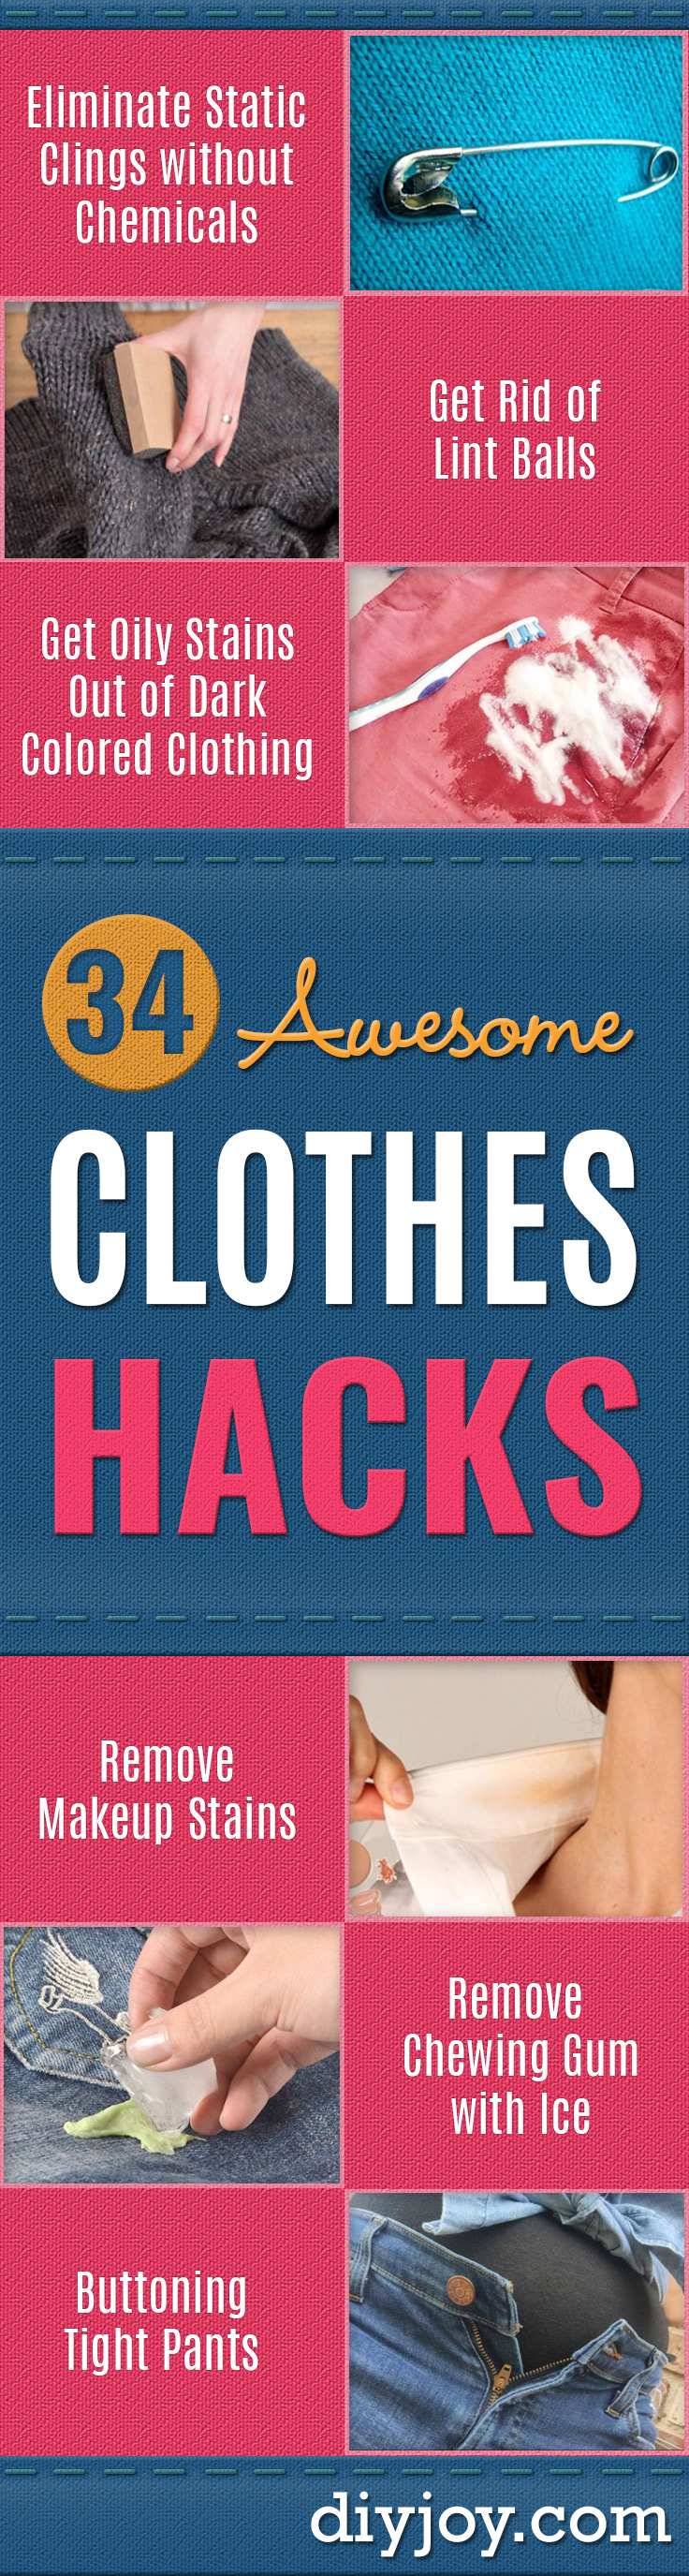 Clothes Hacks - DIY Fashion Ideas For Women and For Every Girl - Easy No Sew Hacks for Men's Shirts - Washing Machines Tips For Teens - How To Make Jeans For Fat People - Storage Tips and Videos for Room Decor http://diyjoy.com/diy-clothes-hacks